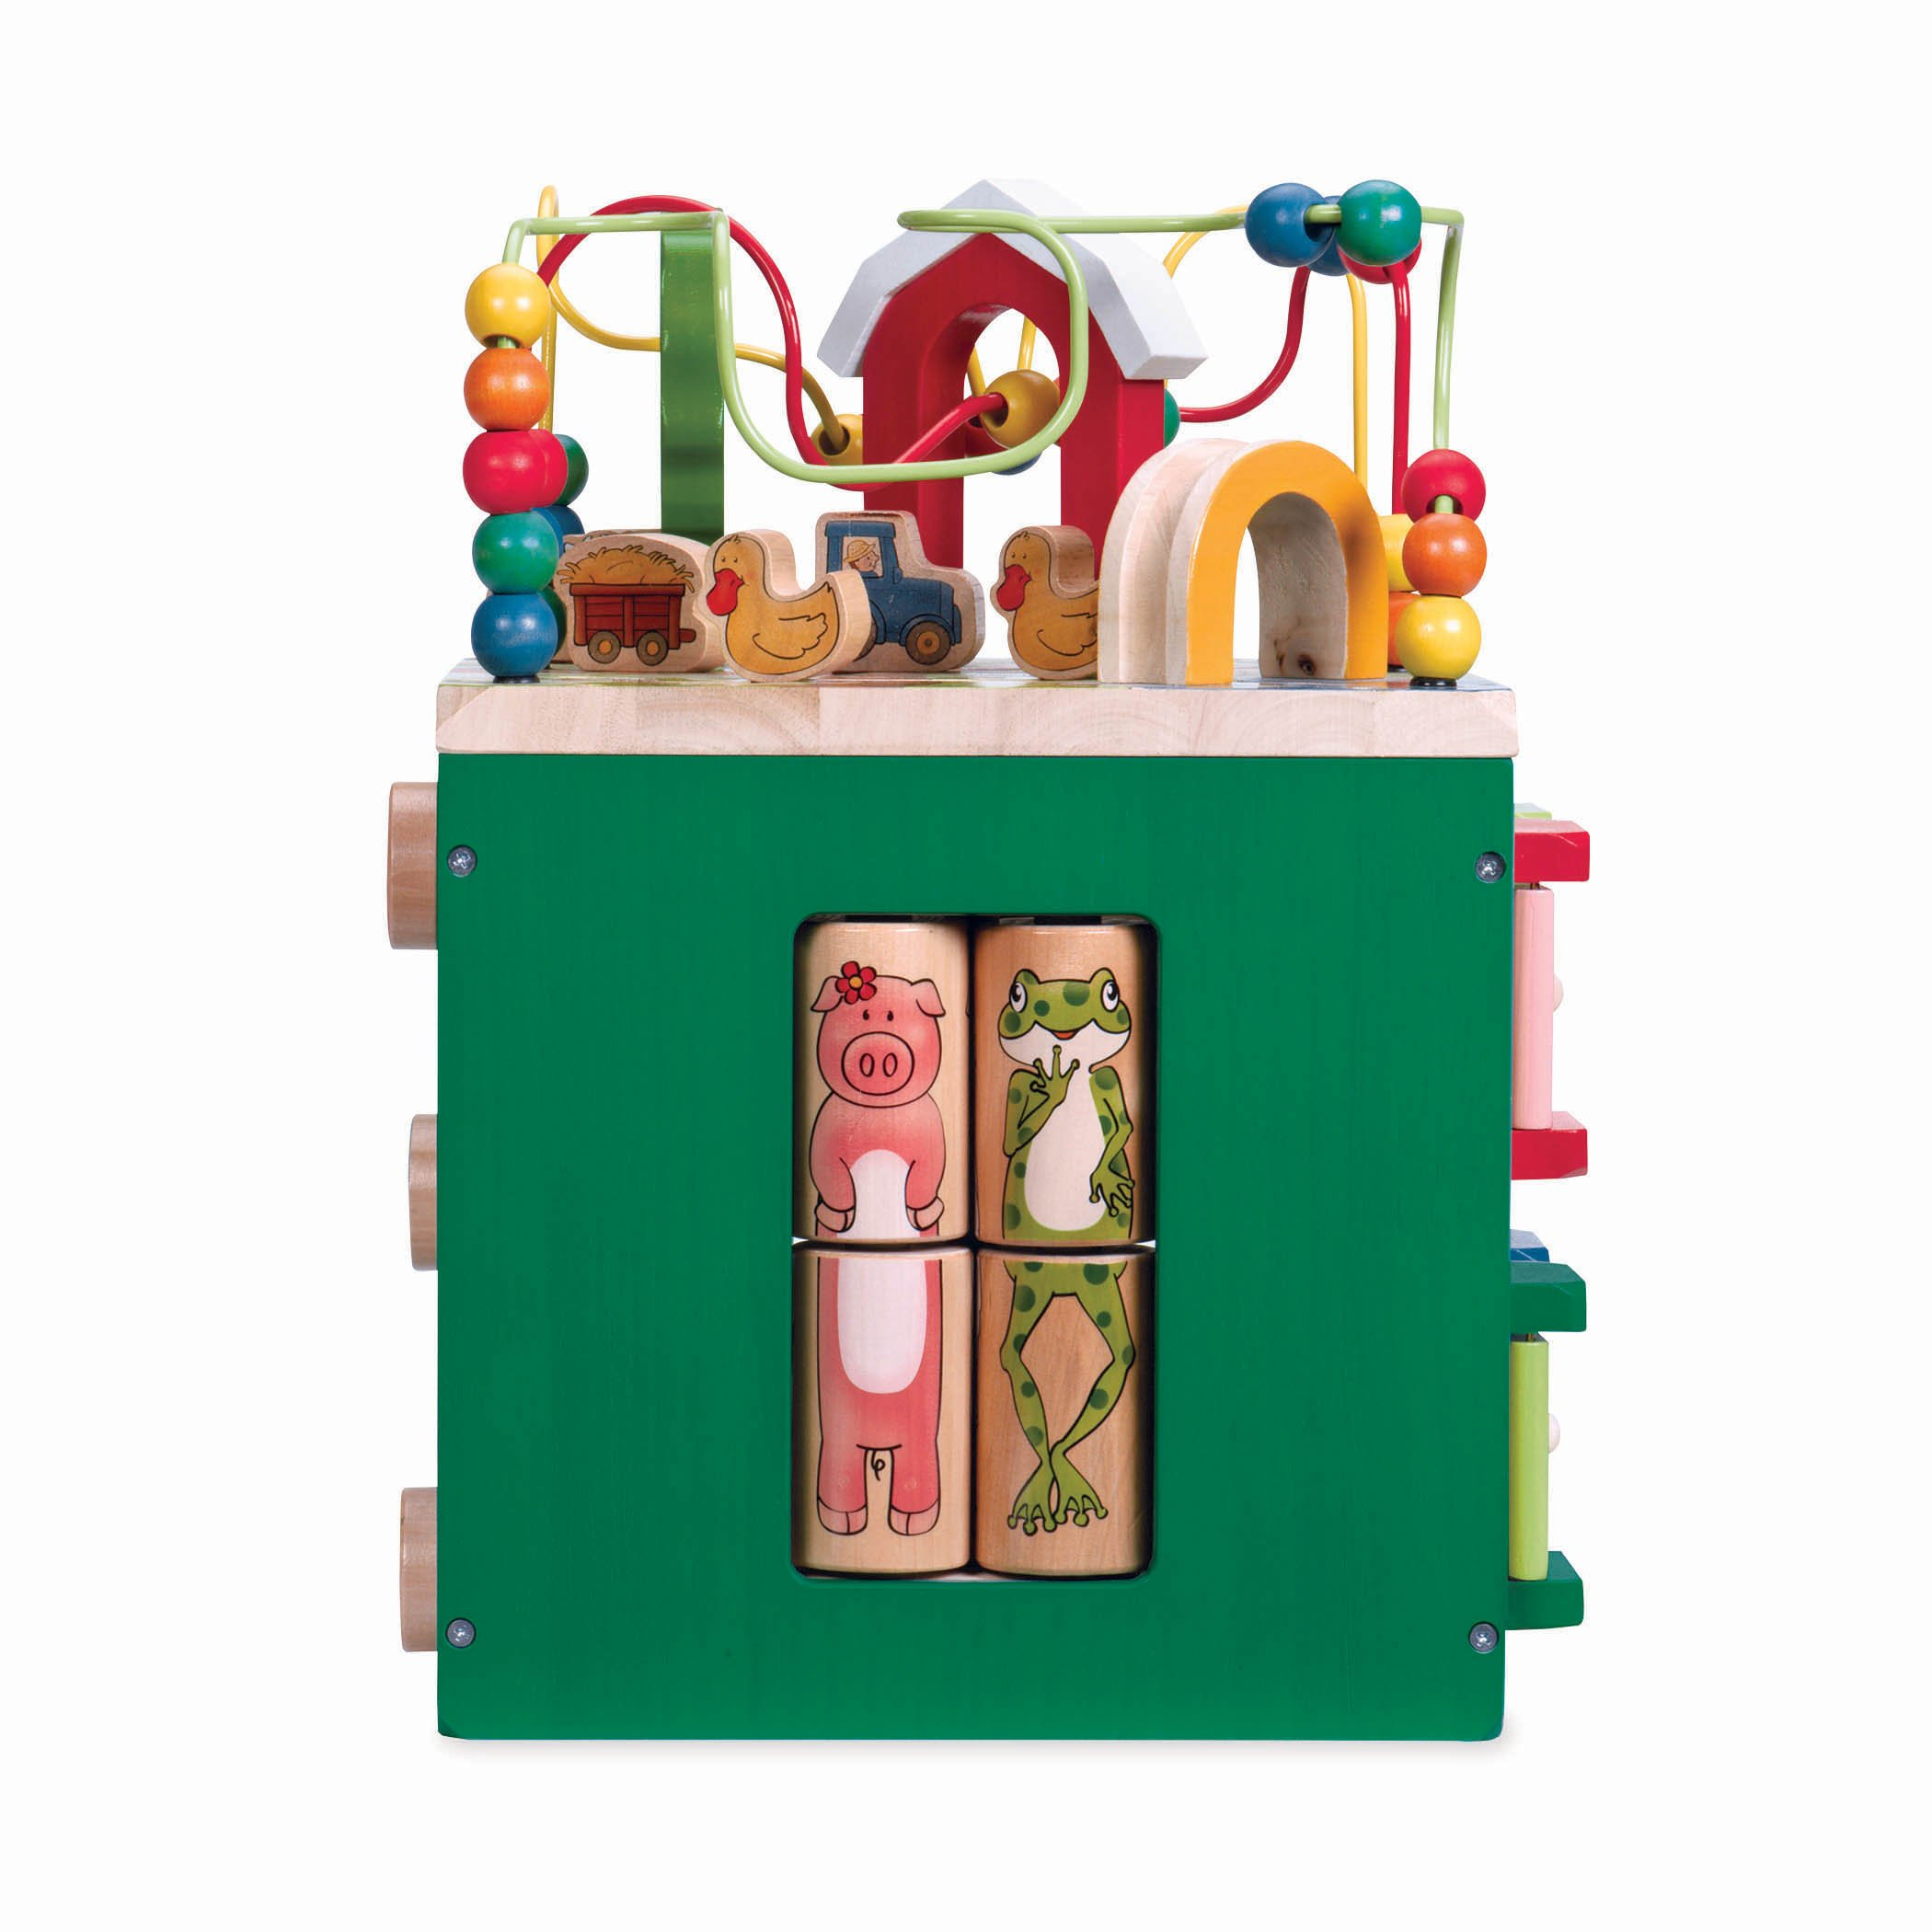 Battat - Wooden Activity Cube - Discover Farm Animals Activity Center for Kids 1 year + by Battat (Image #3)